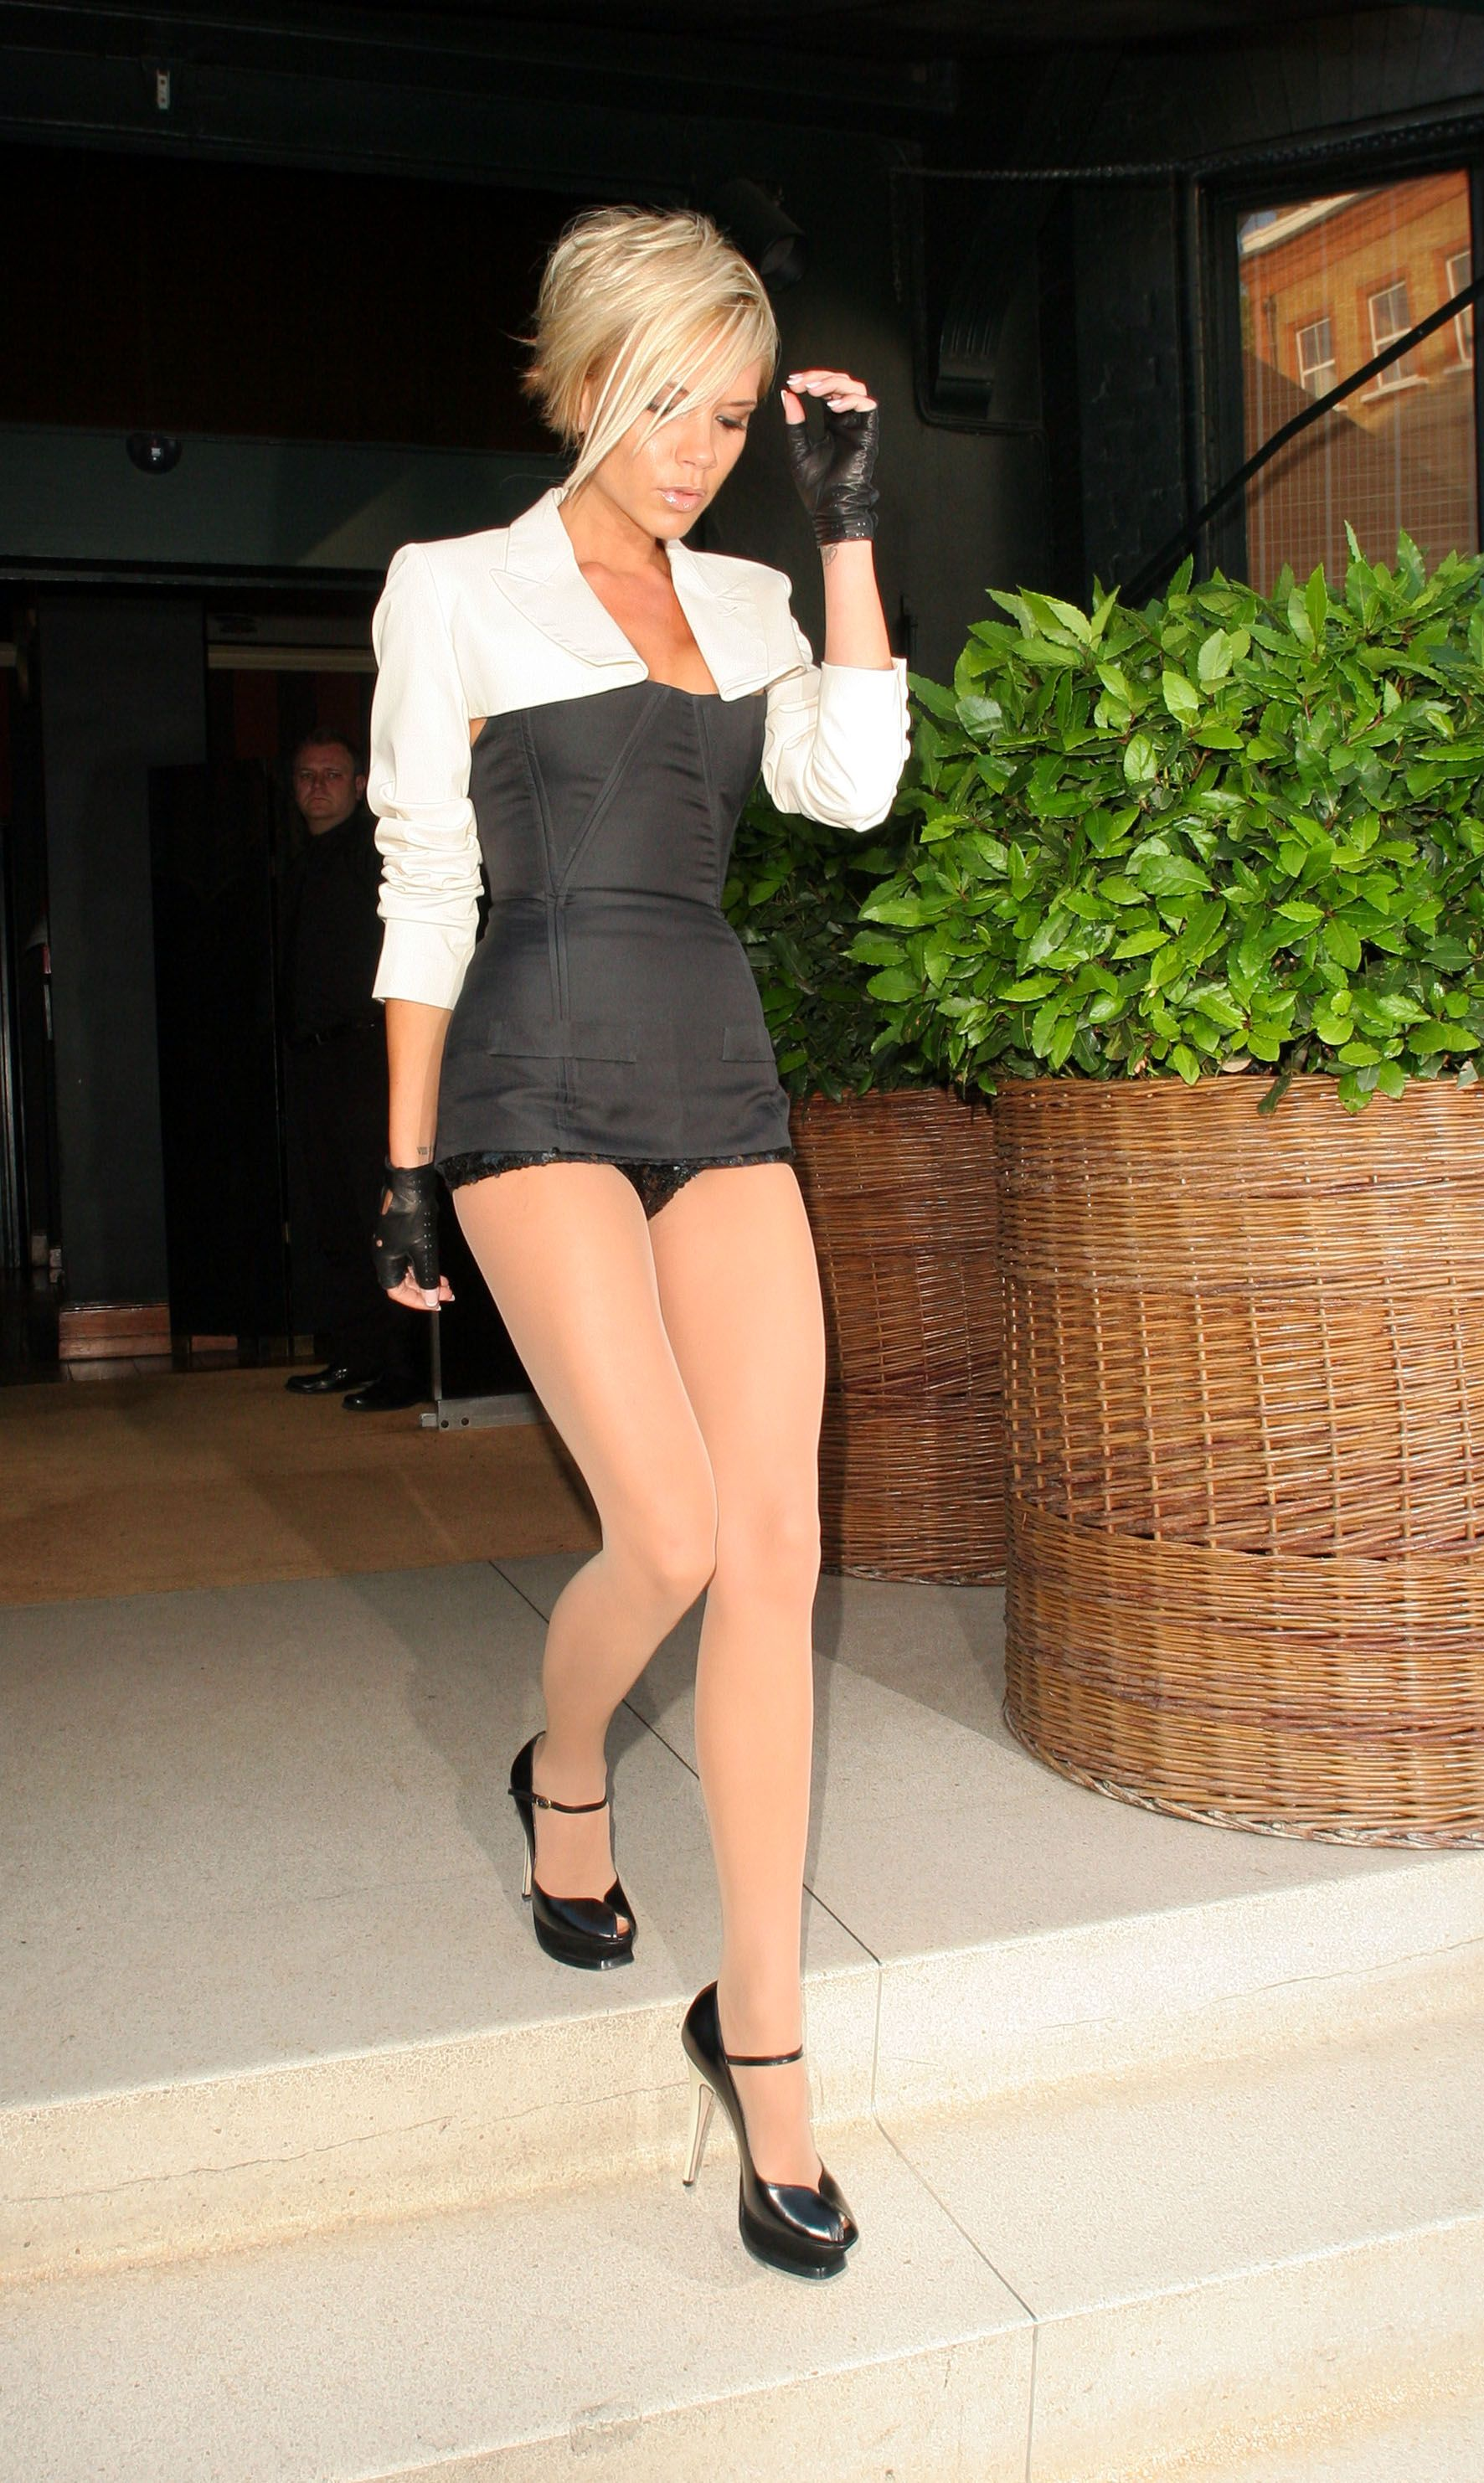 in Victoria pantyhose becham